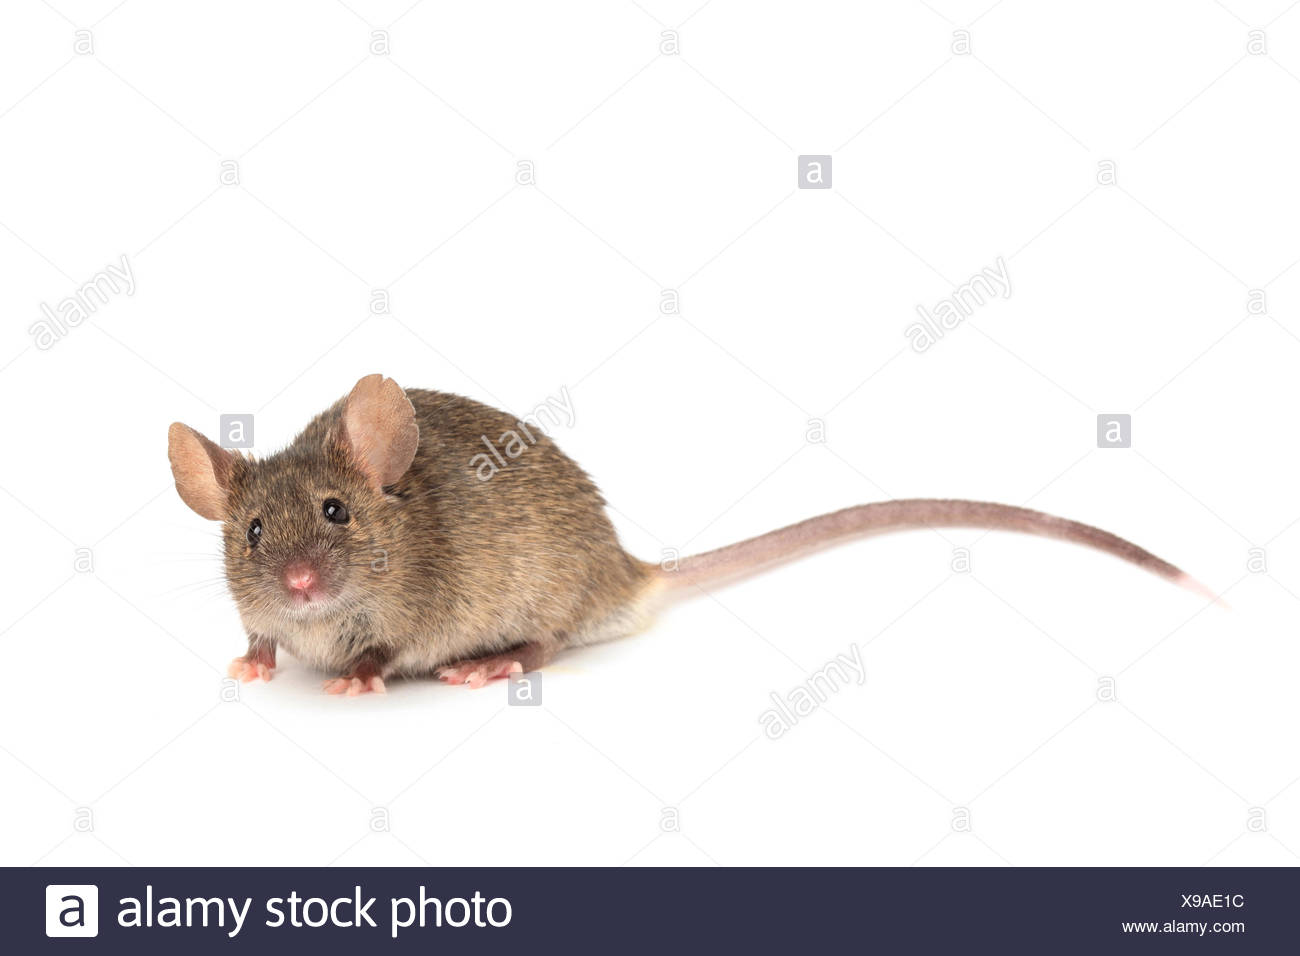 animal, pet, rodent, mouse, maddening, pert, coquettish, cute, isolated, - Stock Image